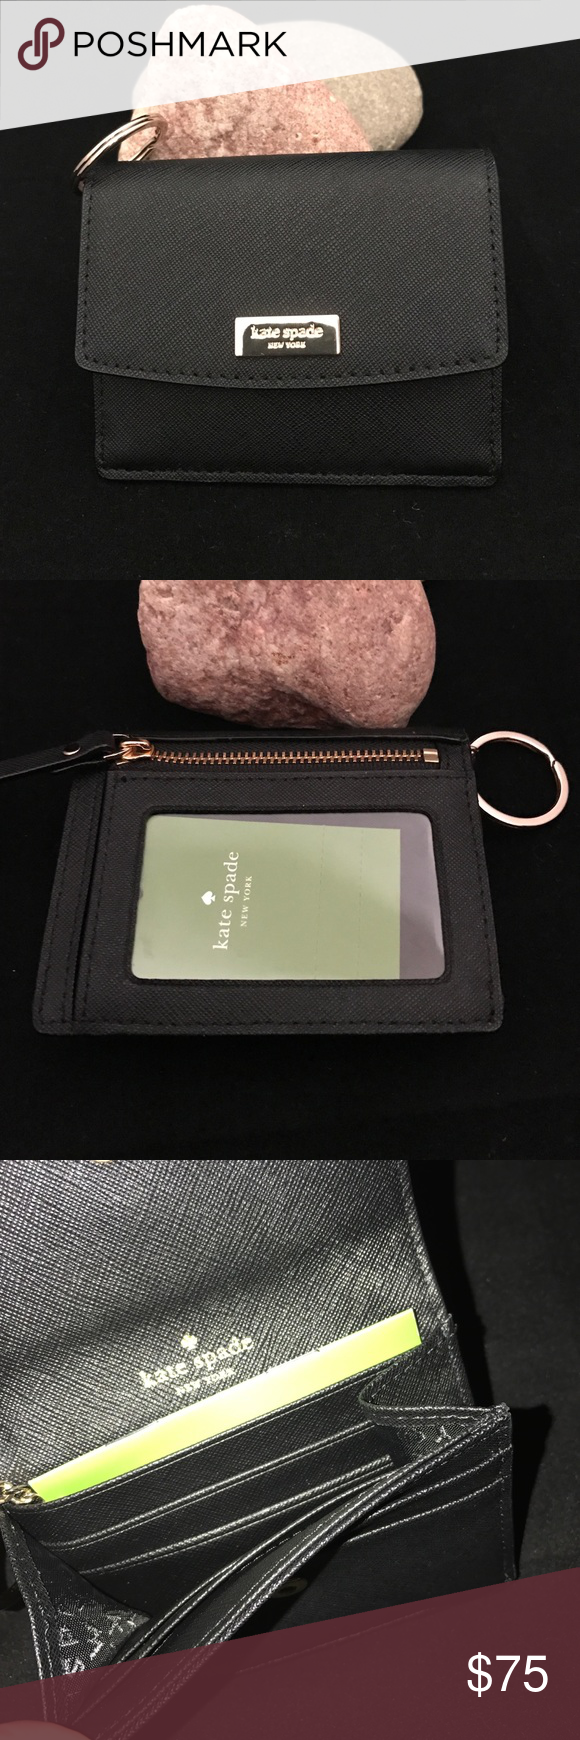 Kate Spade Laurel Way Petty NWT/Black Kate Spade Laurel Way Petty NWT/Black. ✅ALWAYS OPEN TO OFFERS-unless marked firm on price ✅OFFERS SHOULD BE MADE THROUGH POSH OFFER FEATURE ✅PRICES NOT DISCUSSED IN COMMENTS  ✅FEEL FREE TO ASK ANY QUESTIONS  ✅Photos from the Internet could vary slightly from the item that is being shipped  ❎NO TRADES. MSRP $89+tax kate spade Accessories Key & Card Holders